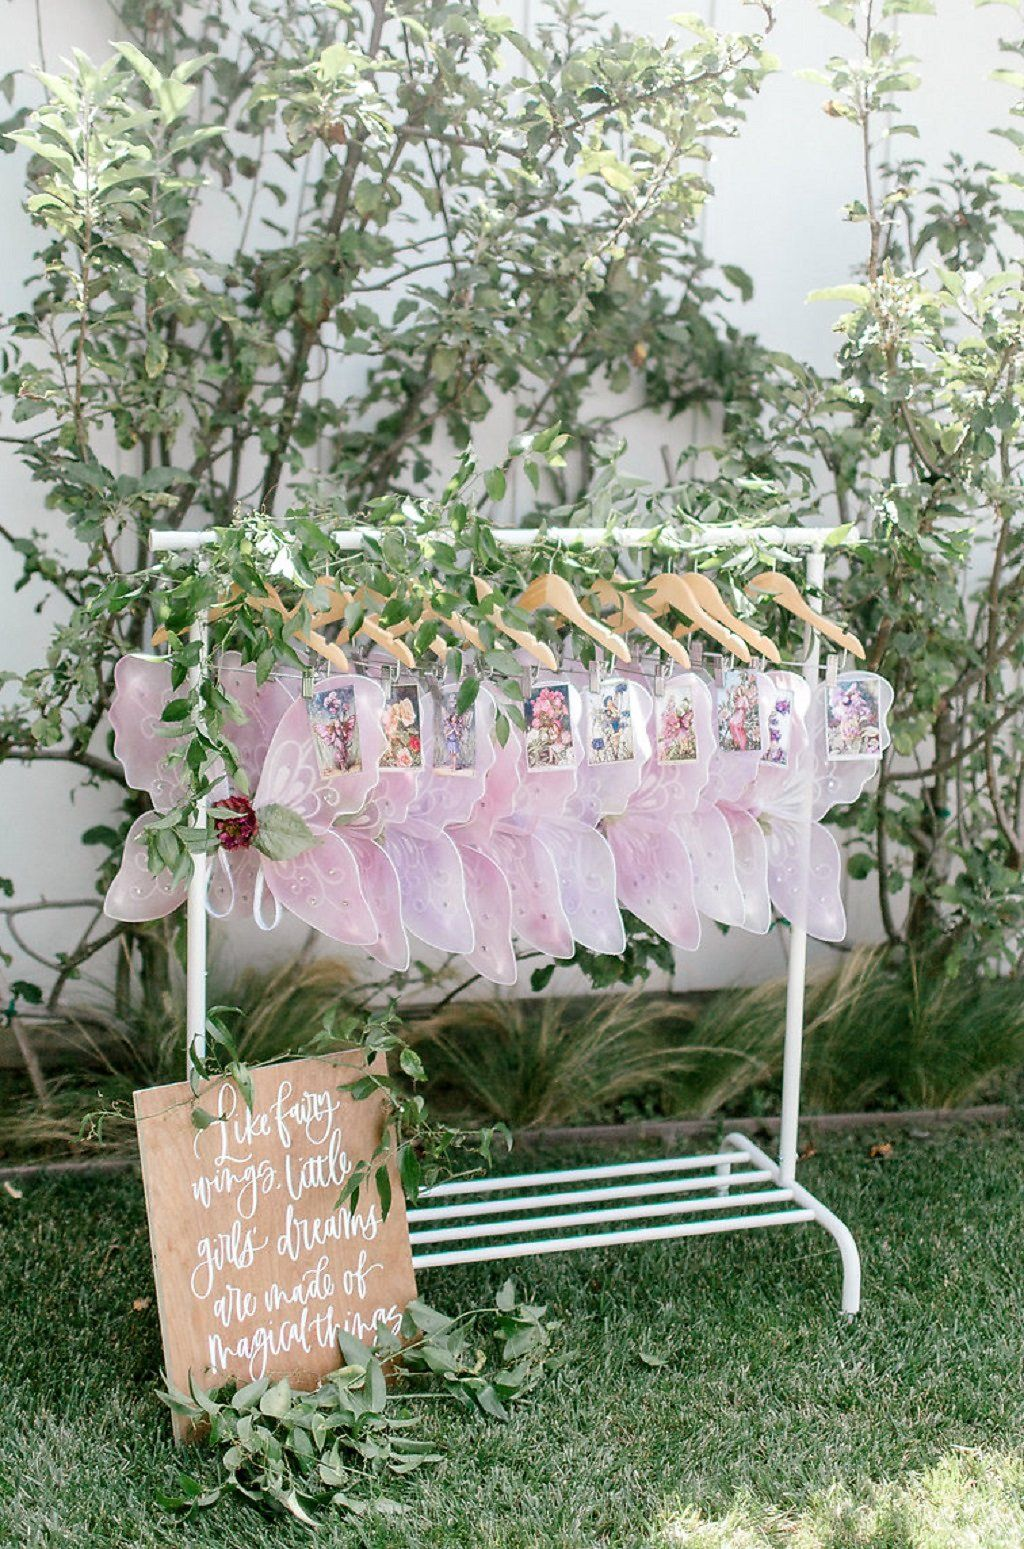 Magical Fairy Garden Birthday Party For Kids - Perfete Kids Party Inspo